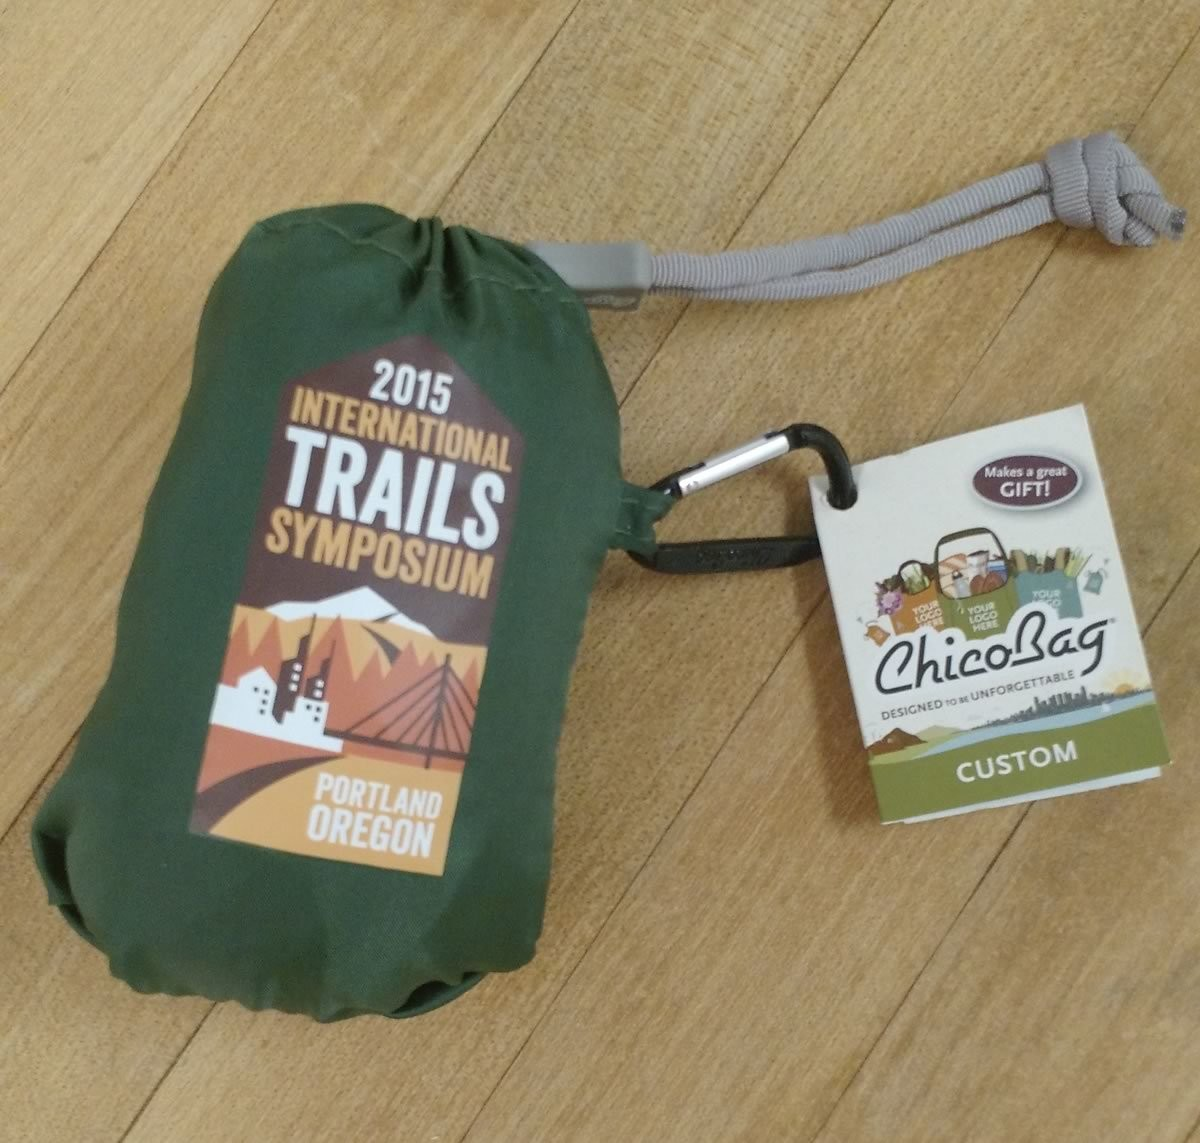 2015 International Trails Symposium ChicoBag